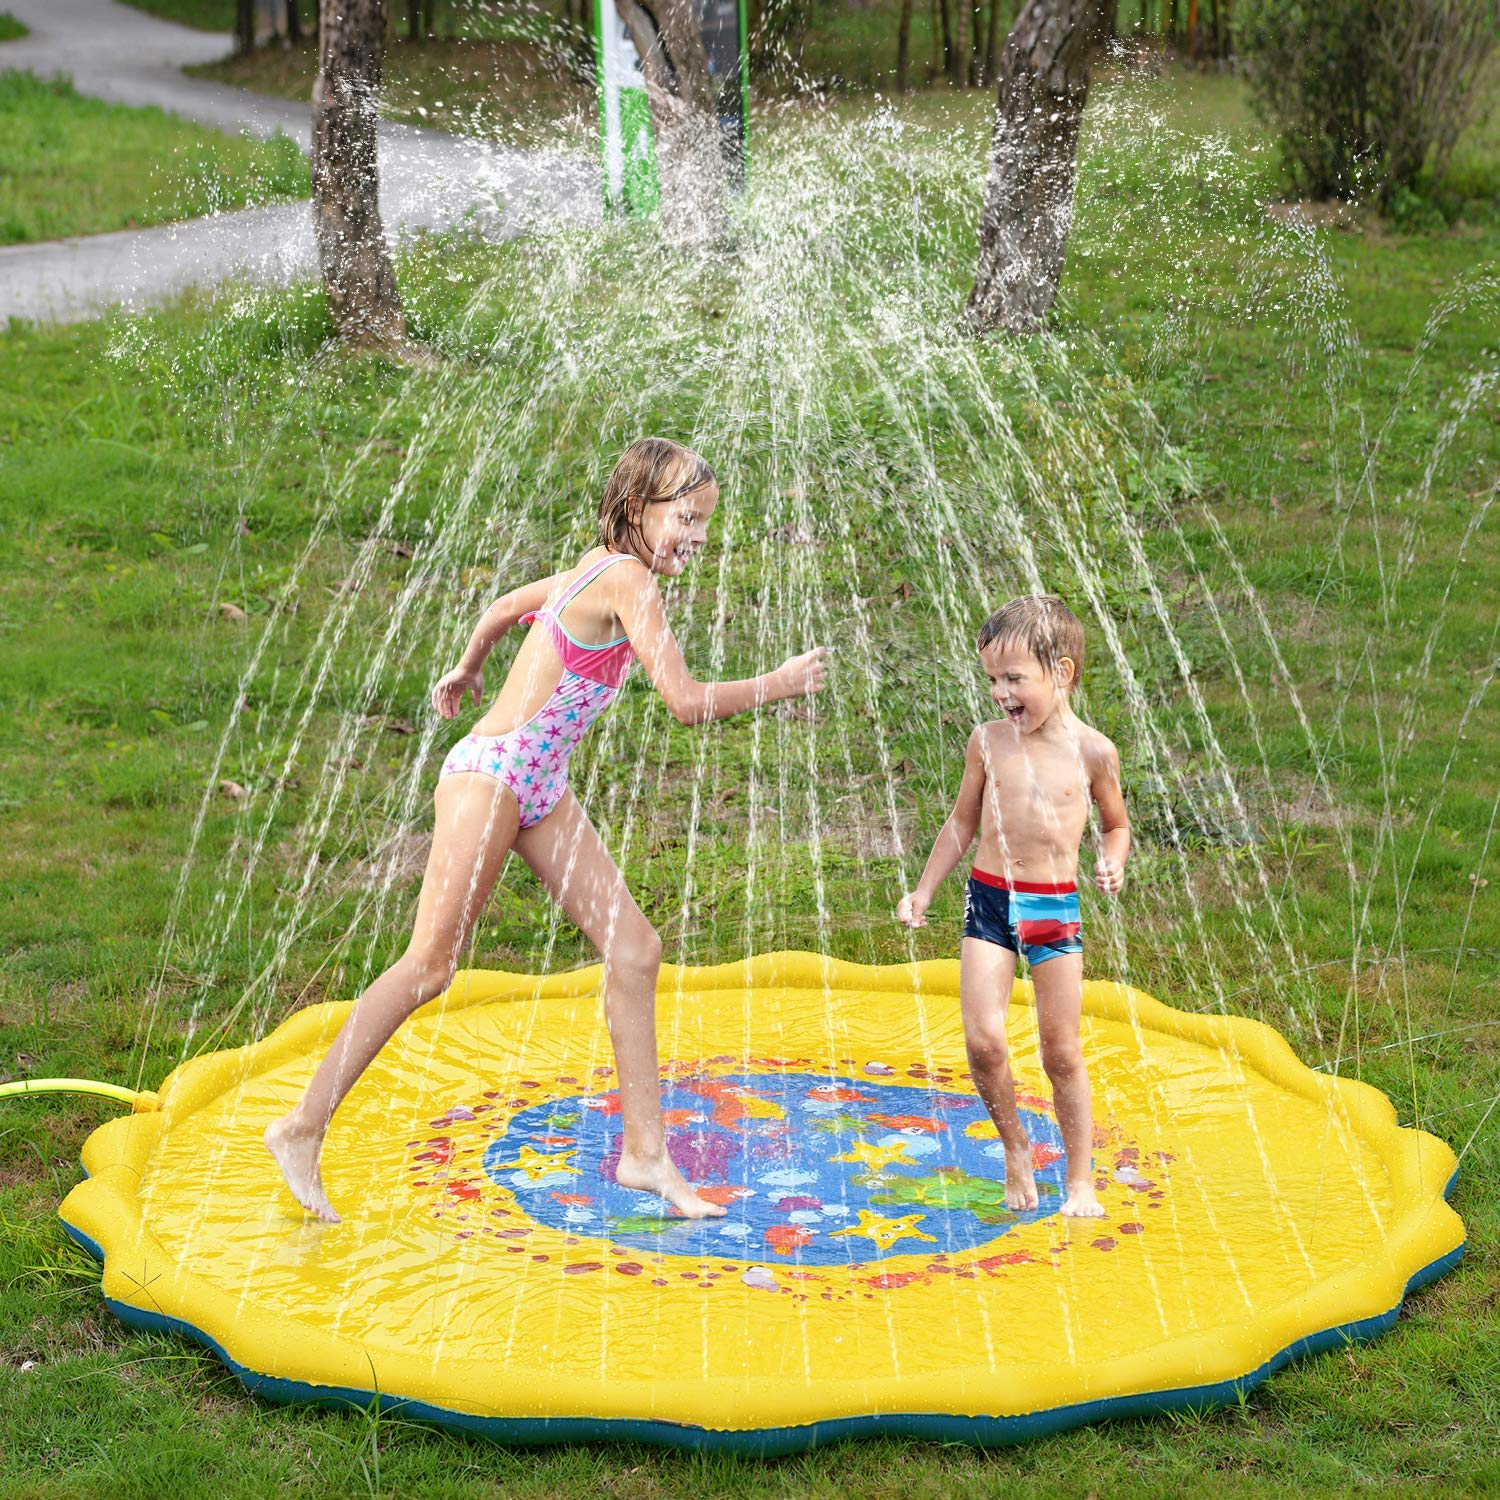 Inflatable Outdoor Sprinkler Pad Summer Water Pad Toys Swimming Party Gift for Kids Children Infants Toddlers Boys Girls Yellow Yealsha Sprinkle and Splash Play Mat 39